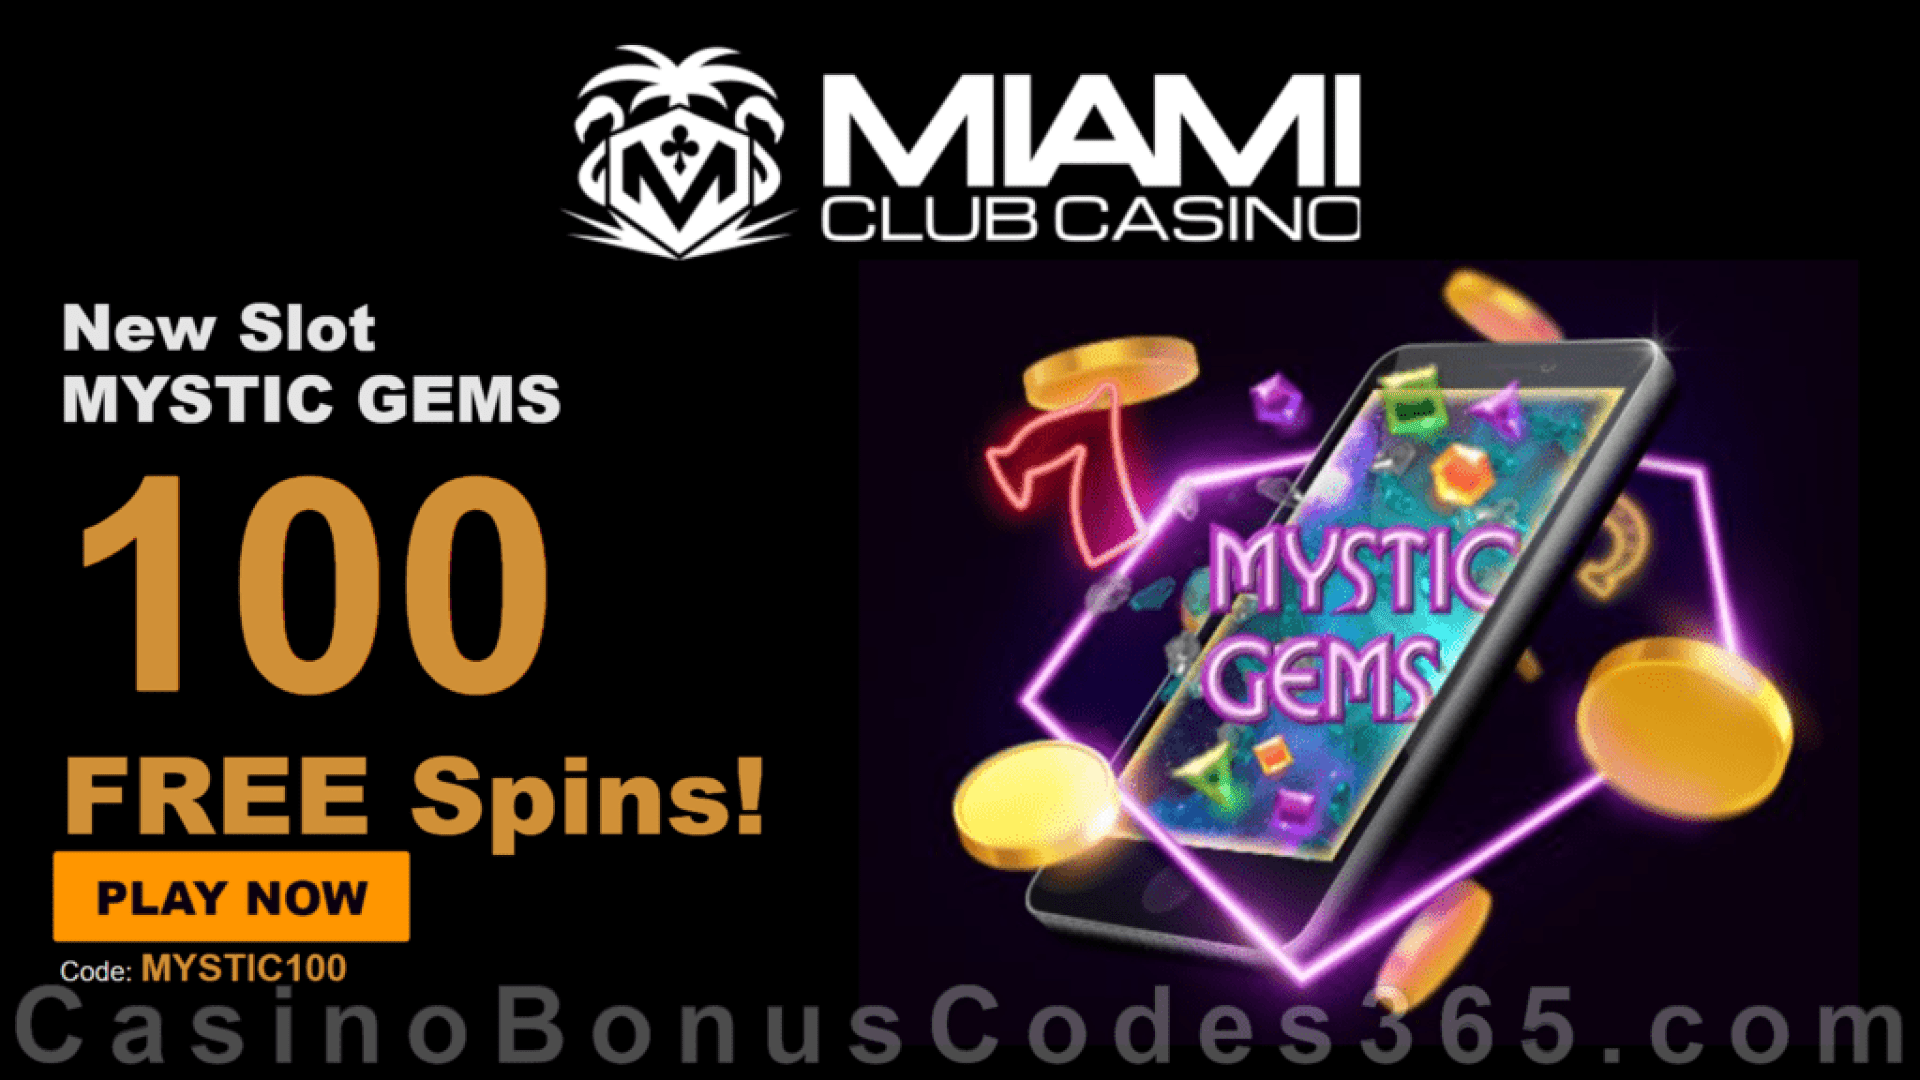 Miami Club Casino 100 FREE Spins on Mystic Gems New WGS Game Special Offer